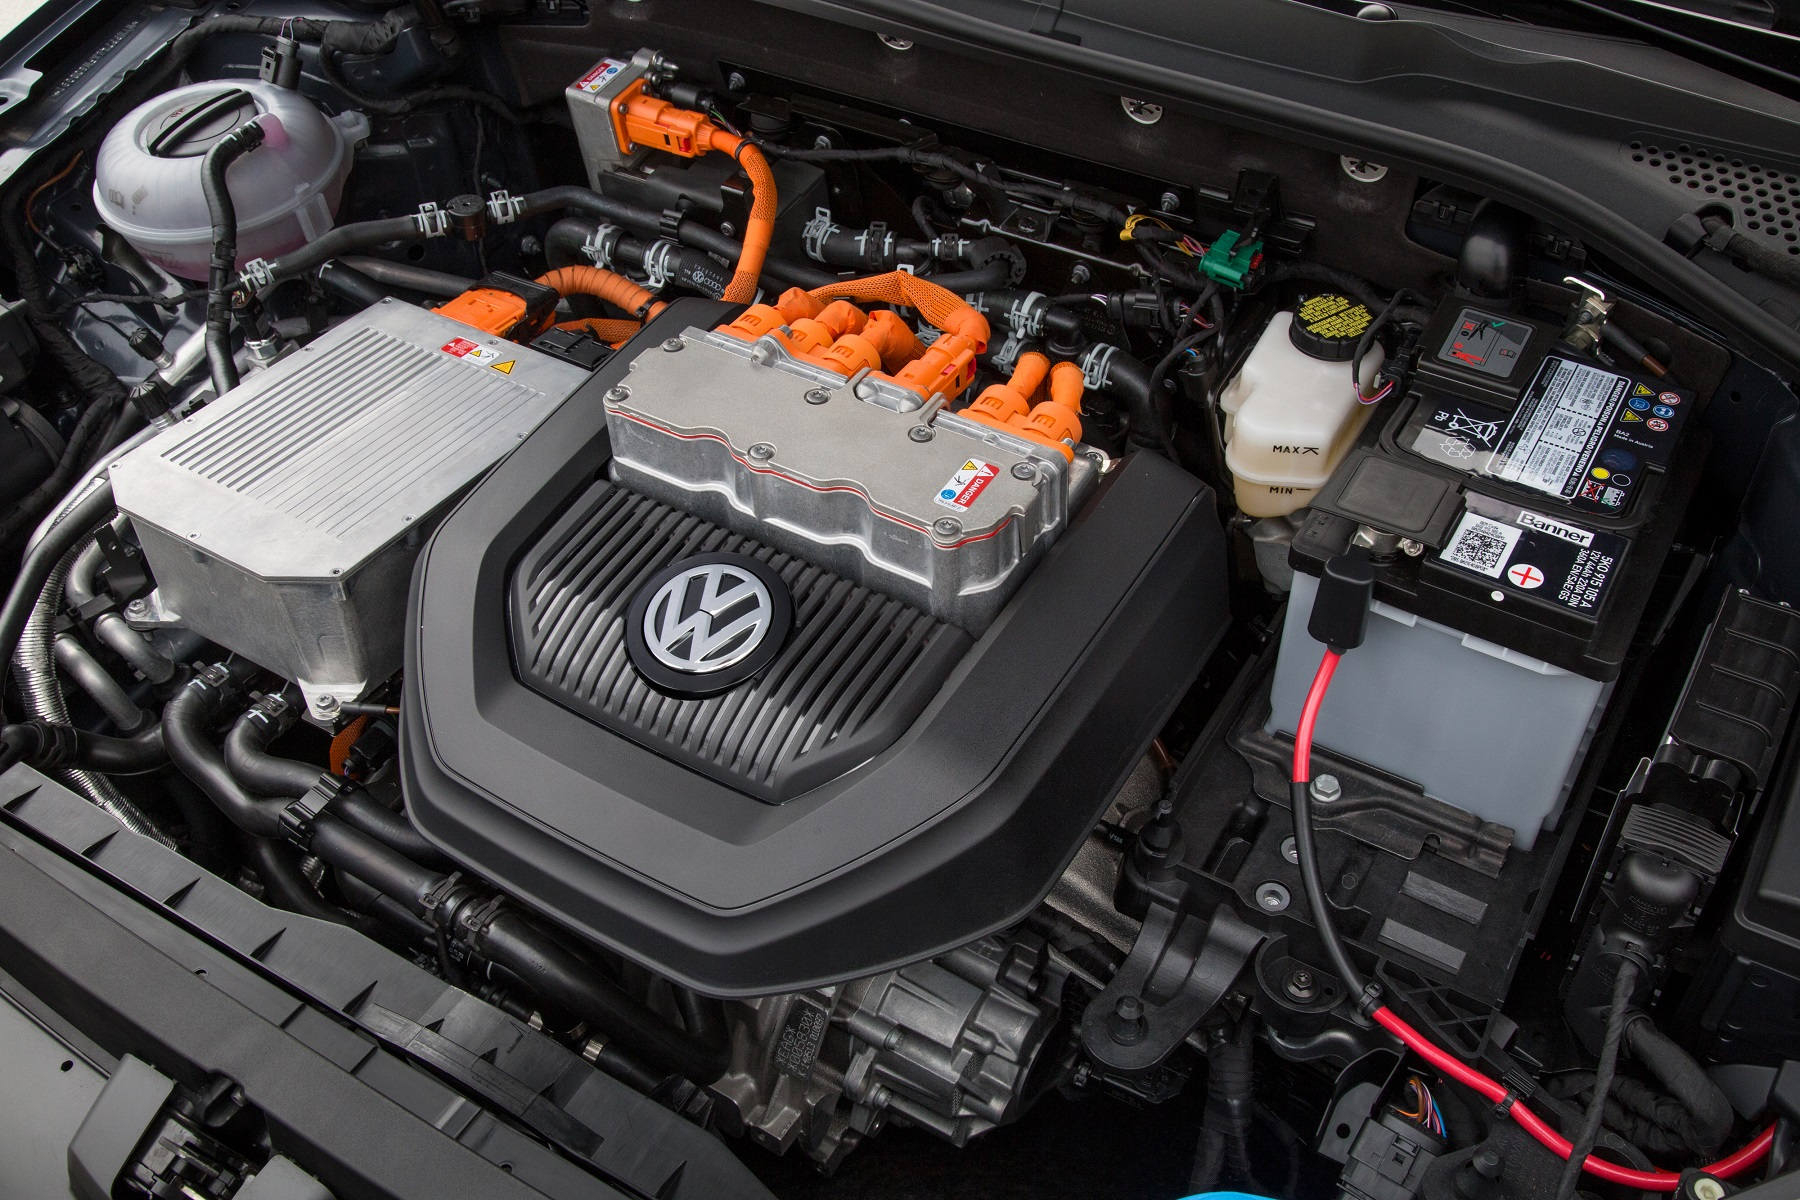 electric motor manufacturer volkswagen e golf pioneer car stereo wiring diagram free not a cart is full green wheeling photo the powered by 115 horsepower